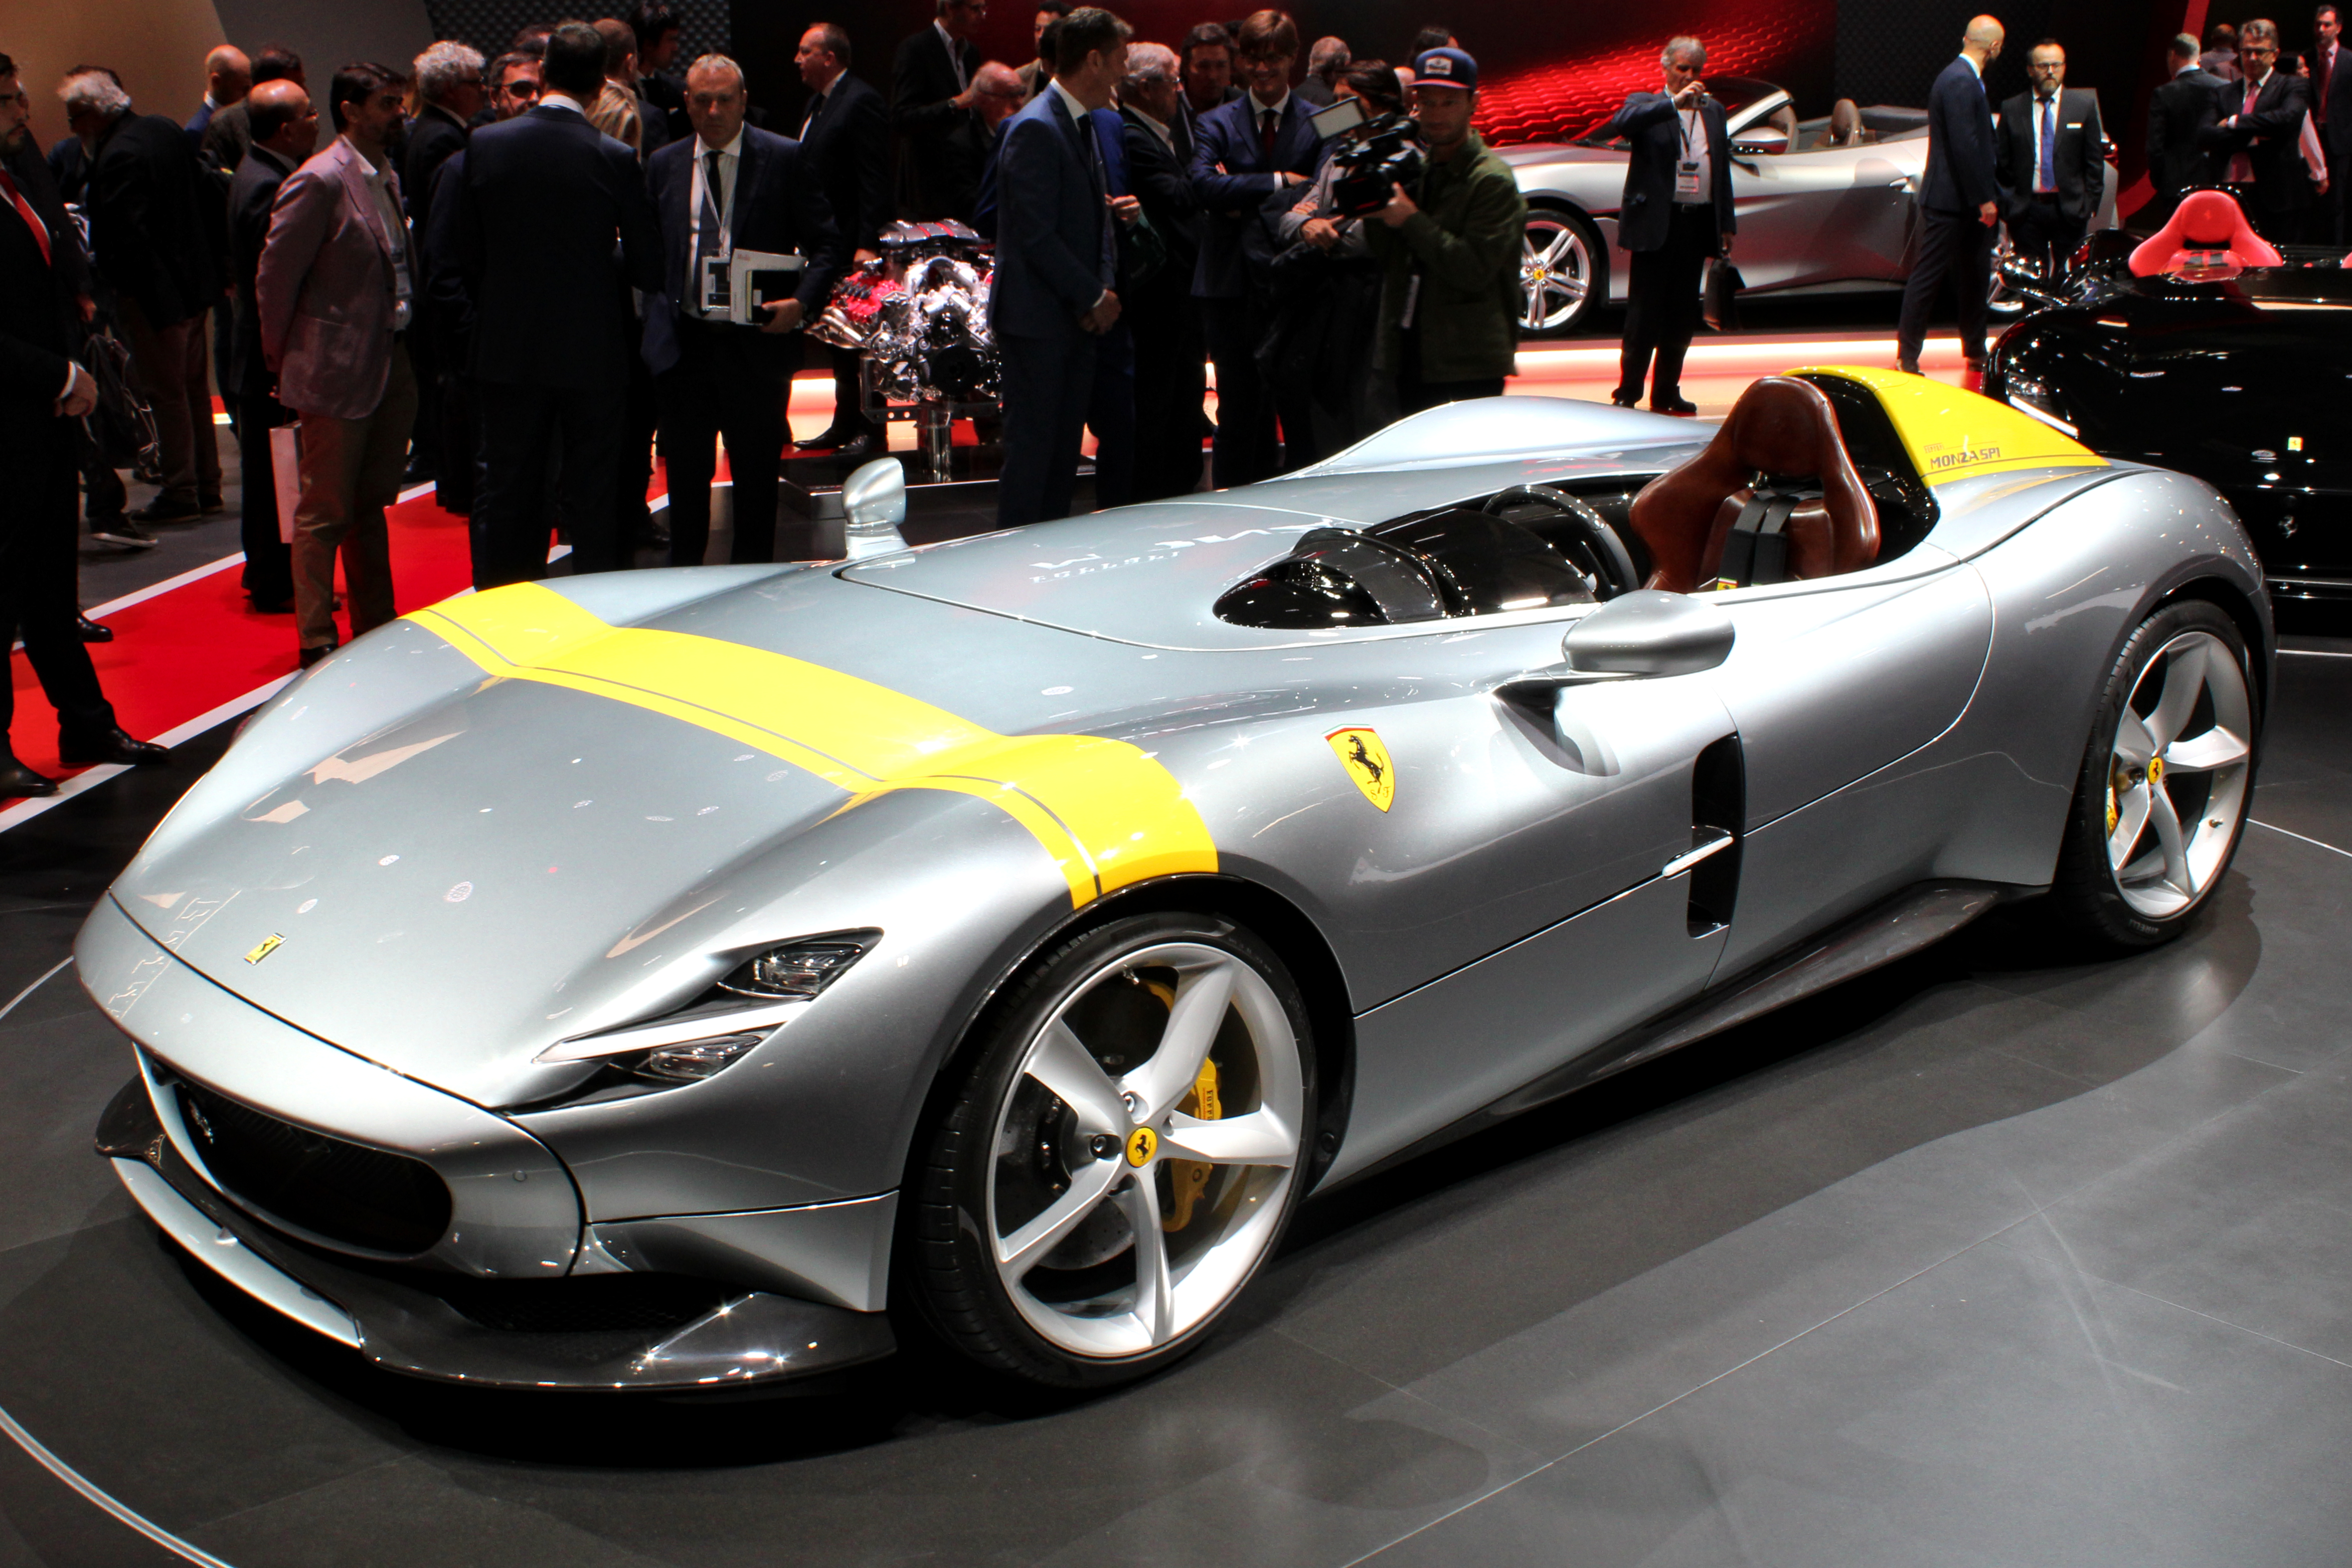 file ferrari monza sp1 paris motor show 2018 img wikimedia commons. Black Bedroom Furniture Sets. Home Design Ideas